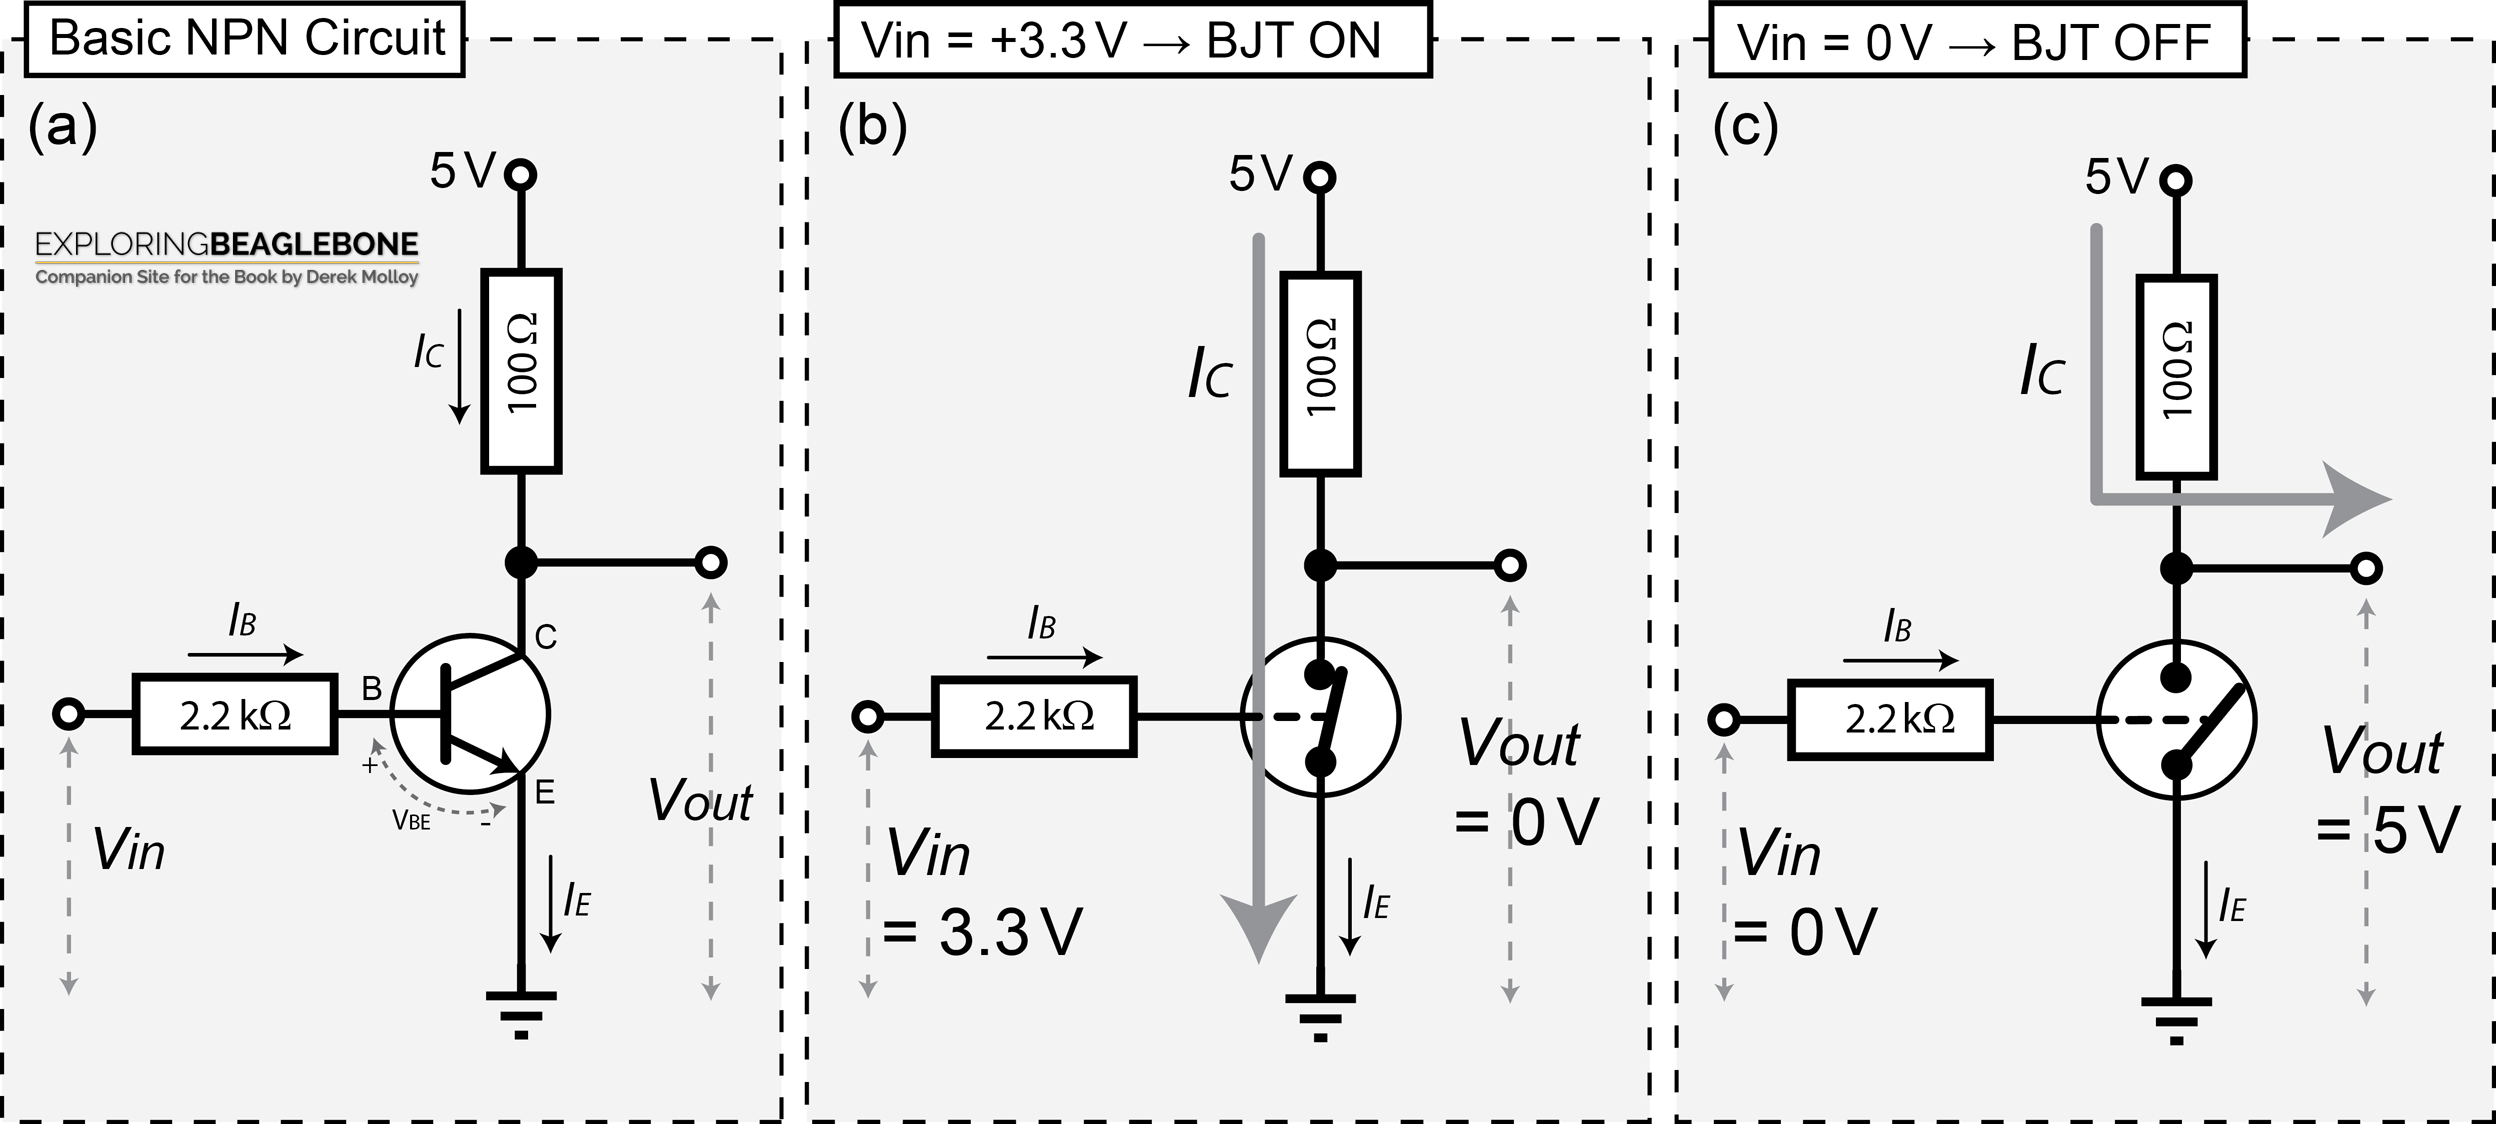 Chapter 4 Interfacing Electronics Exploring Raspberry Pi Again The Switch Debounce Circuit Is Easier To See On Schematic Some Images From